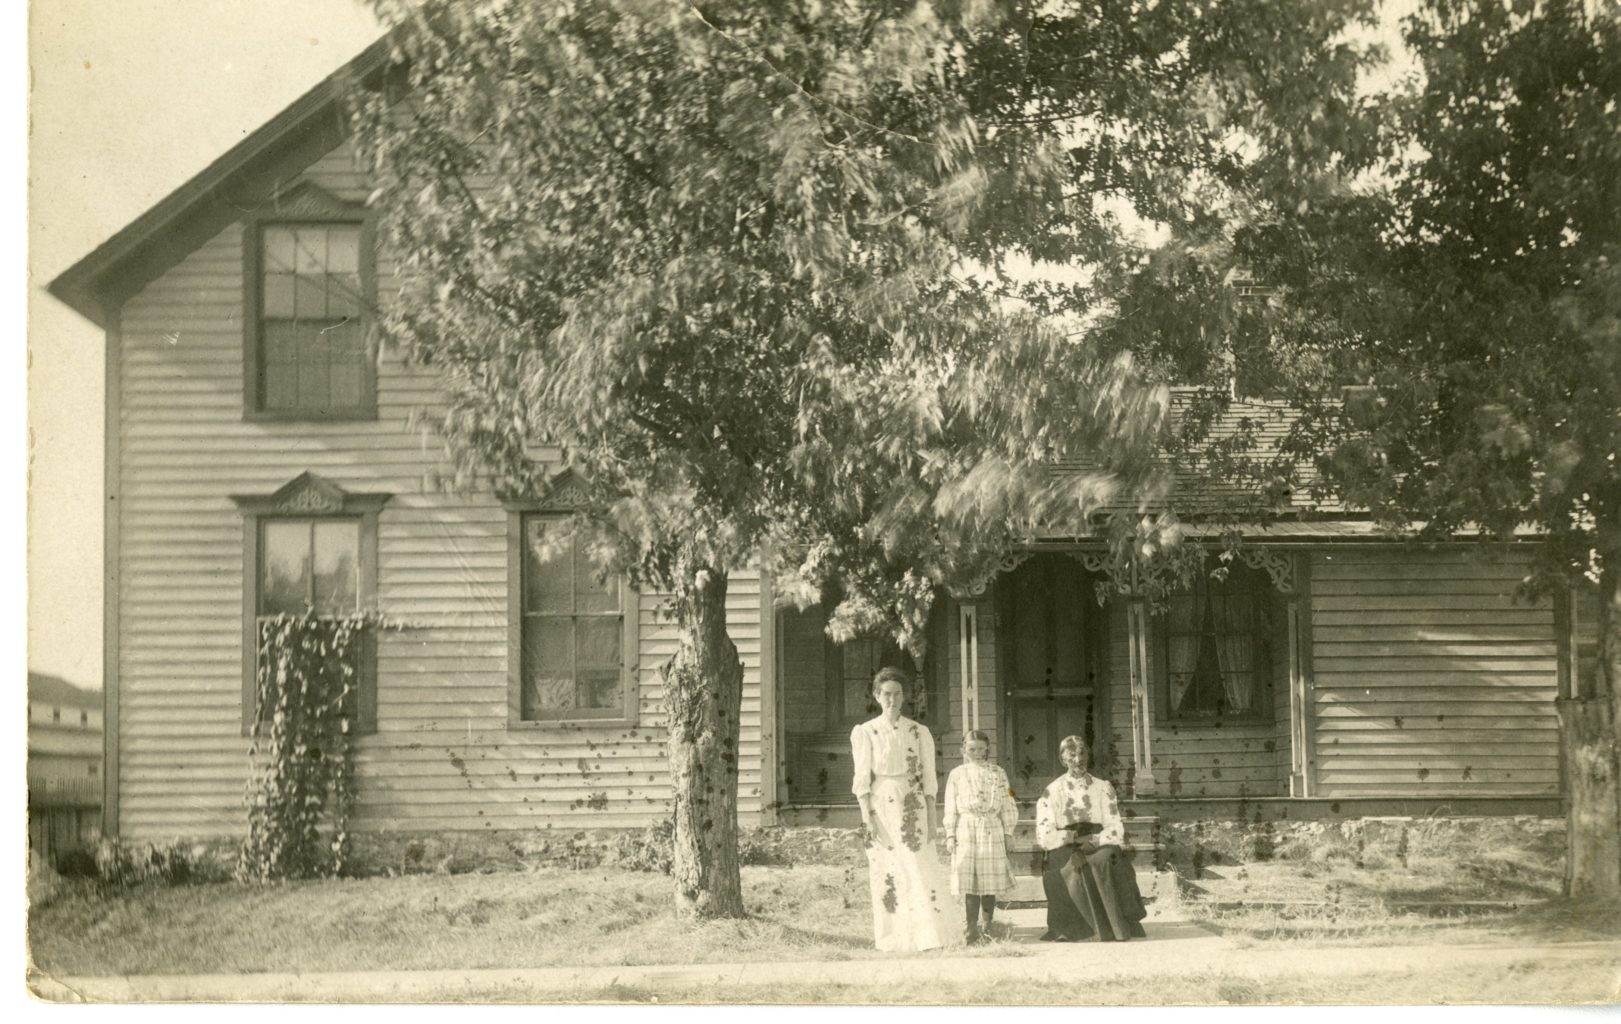 Three women pose for a photograph outside a house.